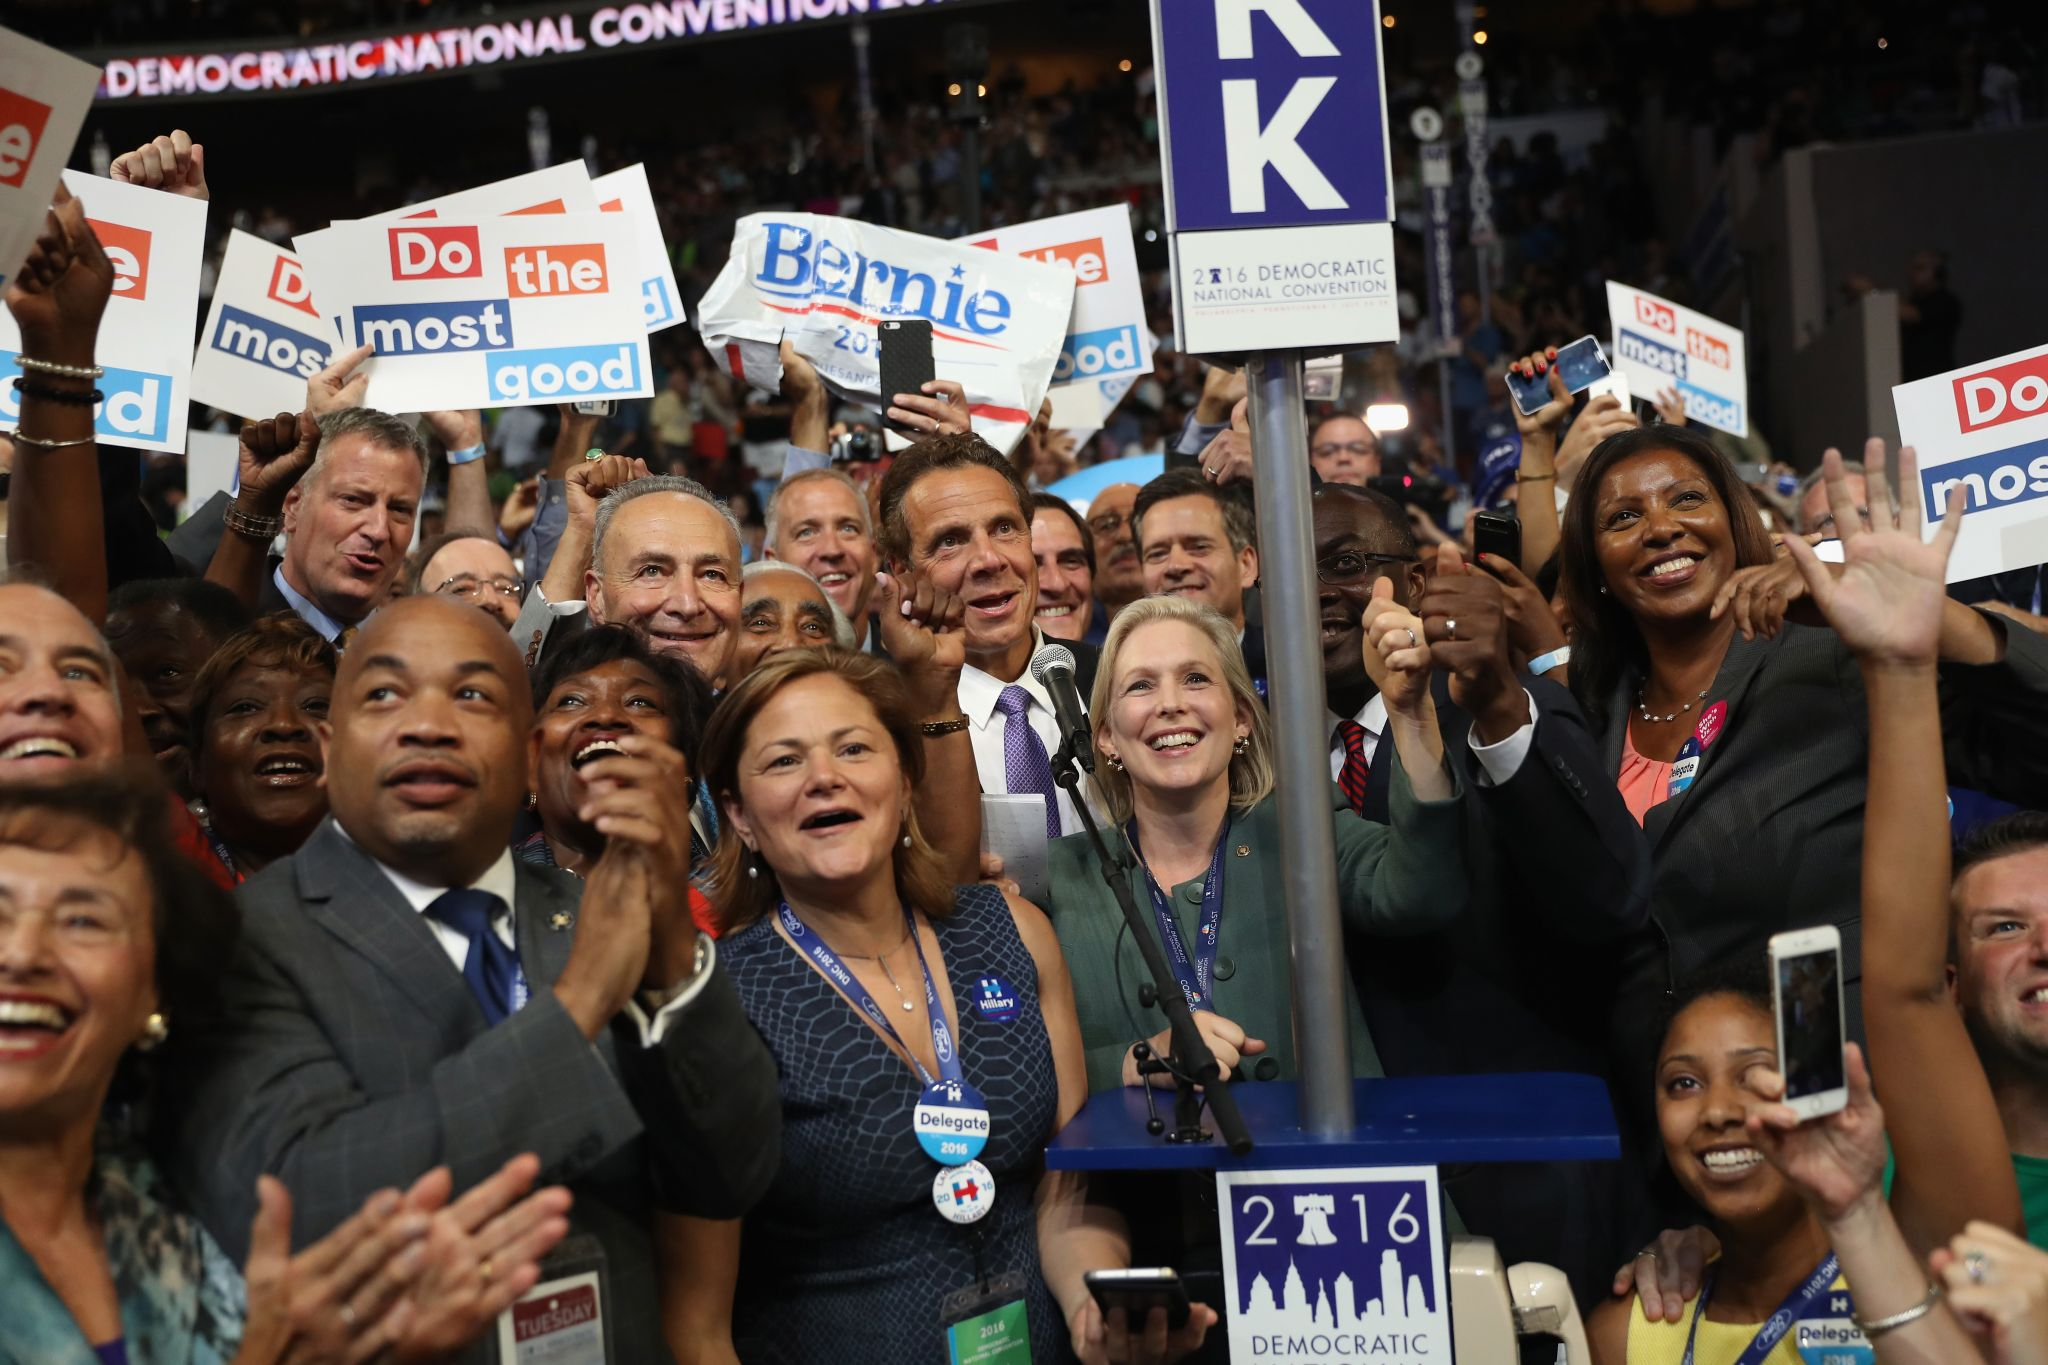 `Stay-in-place` conventions disappoint NY delegates hoping for fanfare